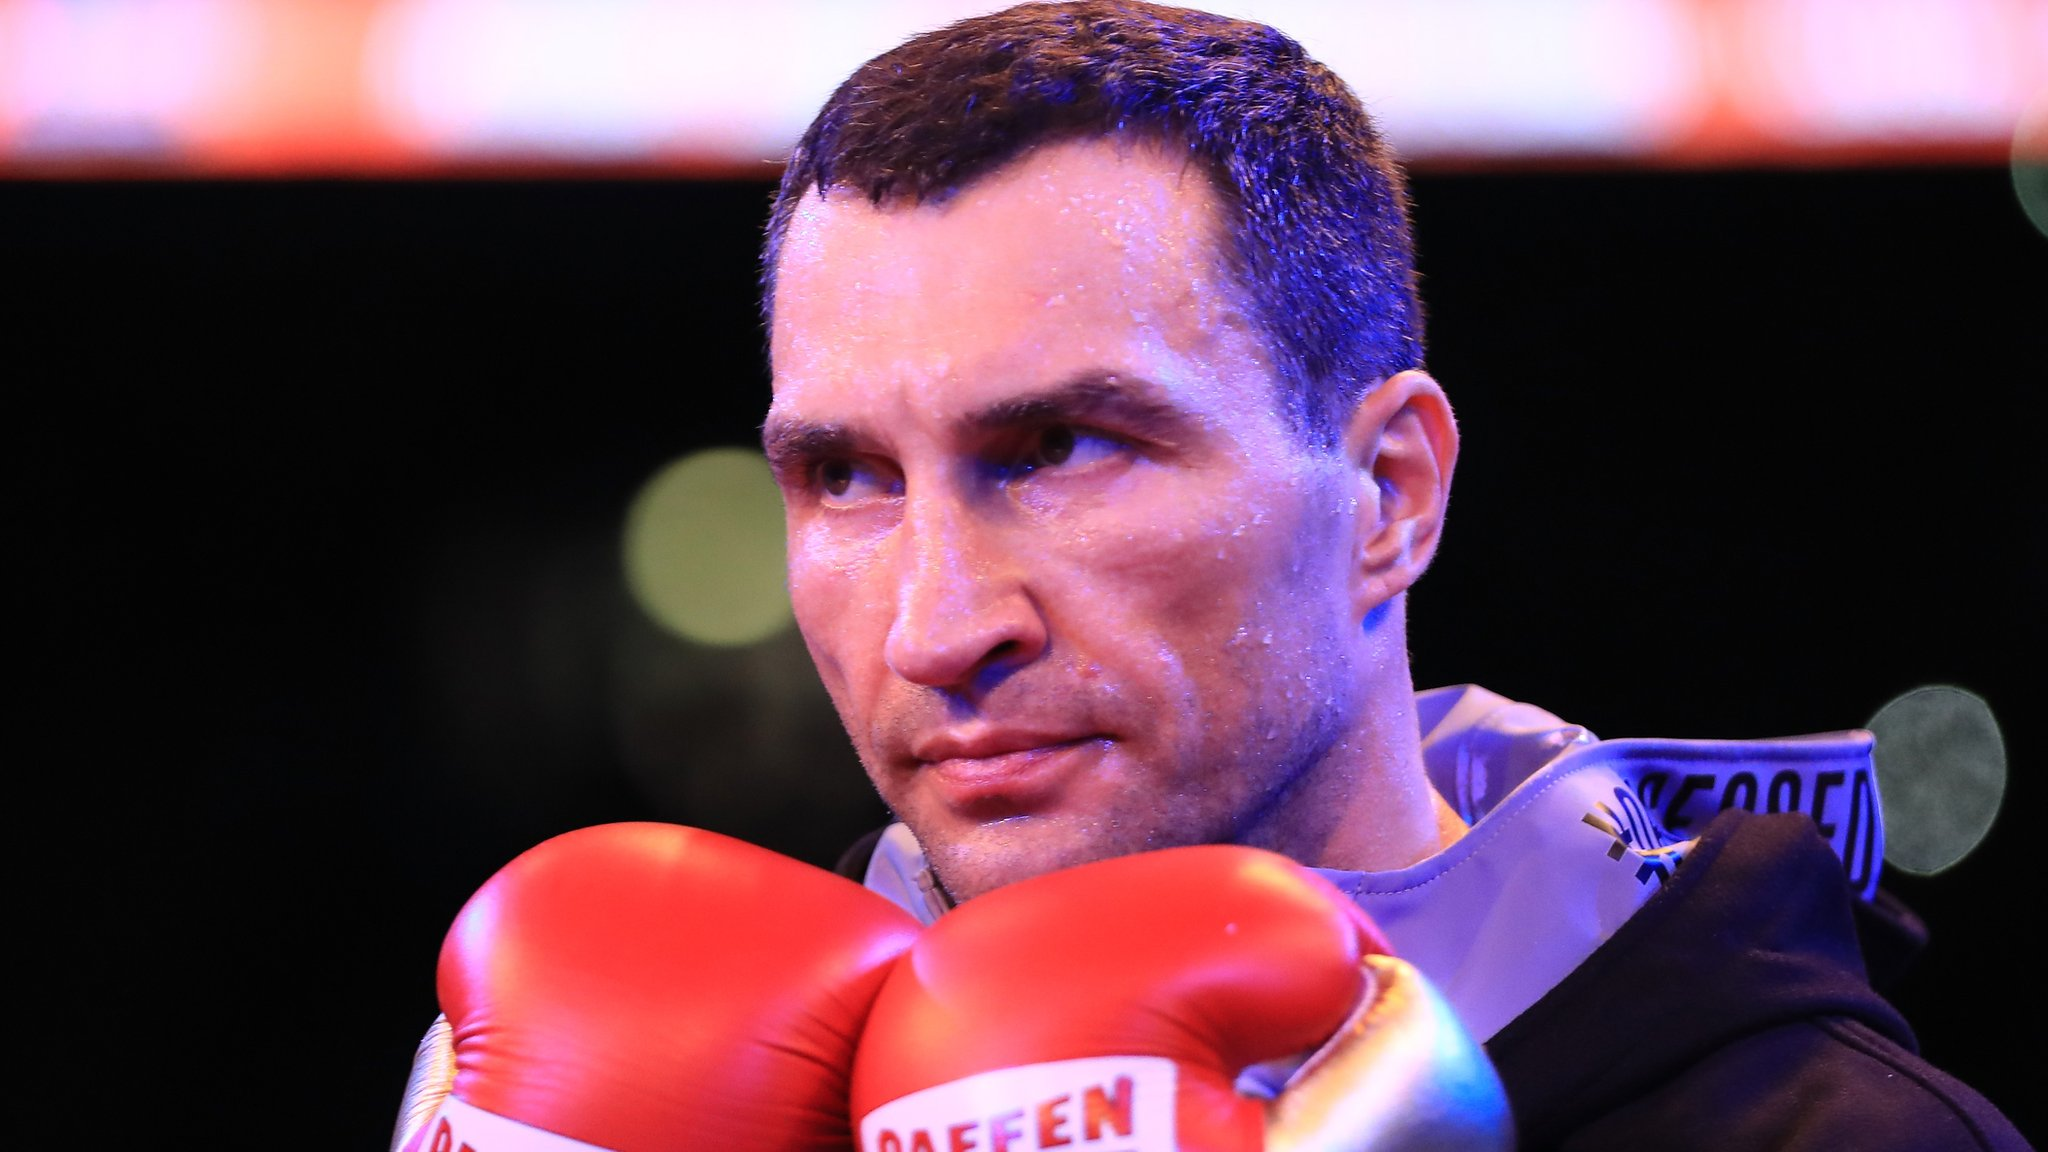 Wladimir Klitschko: Dillian Whyte says former champion is seeking boxing return